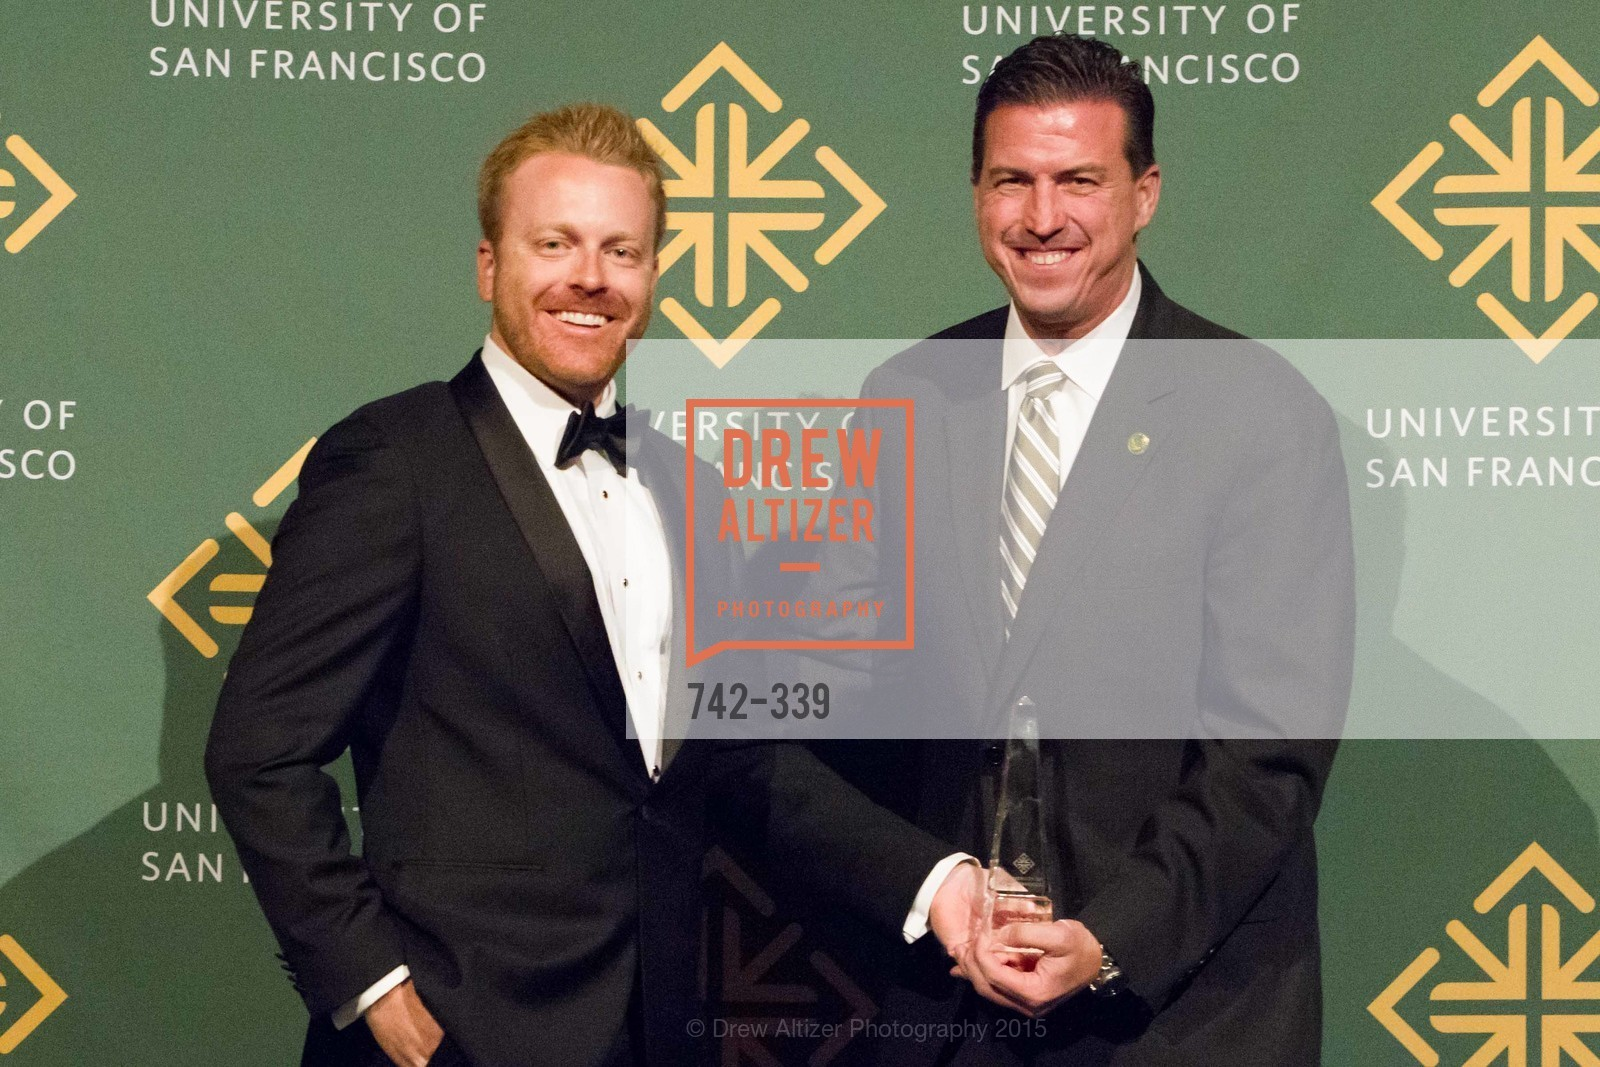 Jay Dillon, Kevin Mullin, University of San Francisco Alumni Awards Gala 2015, University of San Francisco, October 2nd, 2015,Drew Altizer, Drew Altizer Photography, full-service event agency, private events, San Francisco photographer, photographer California